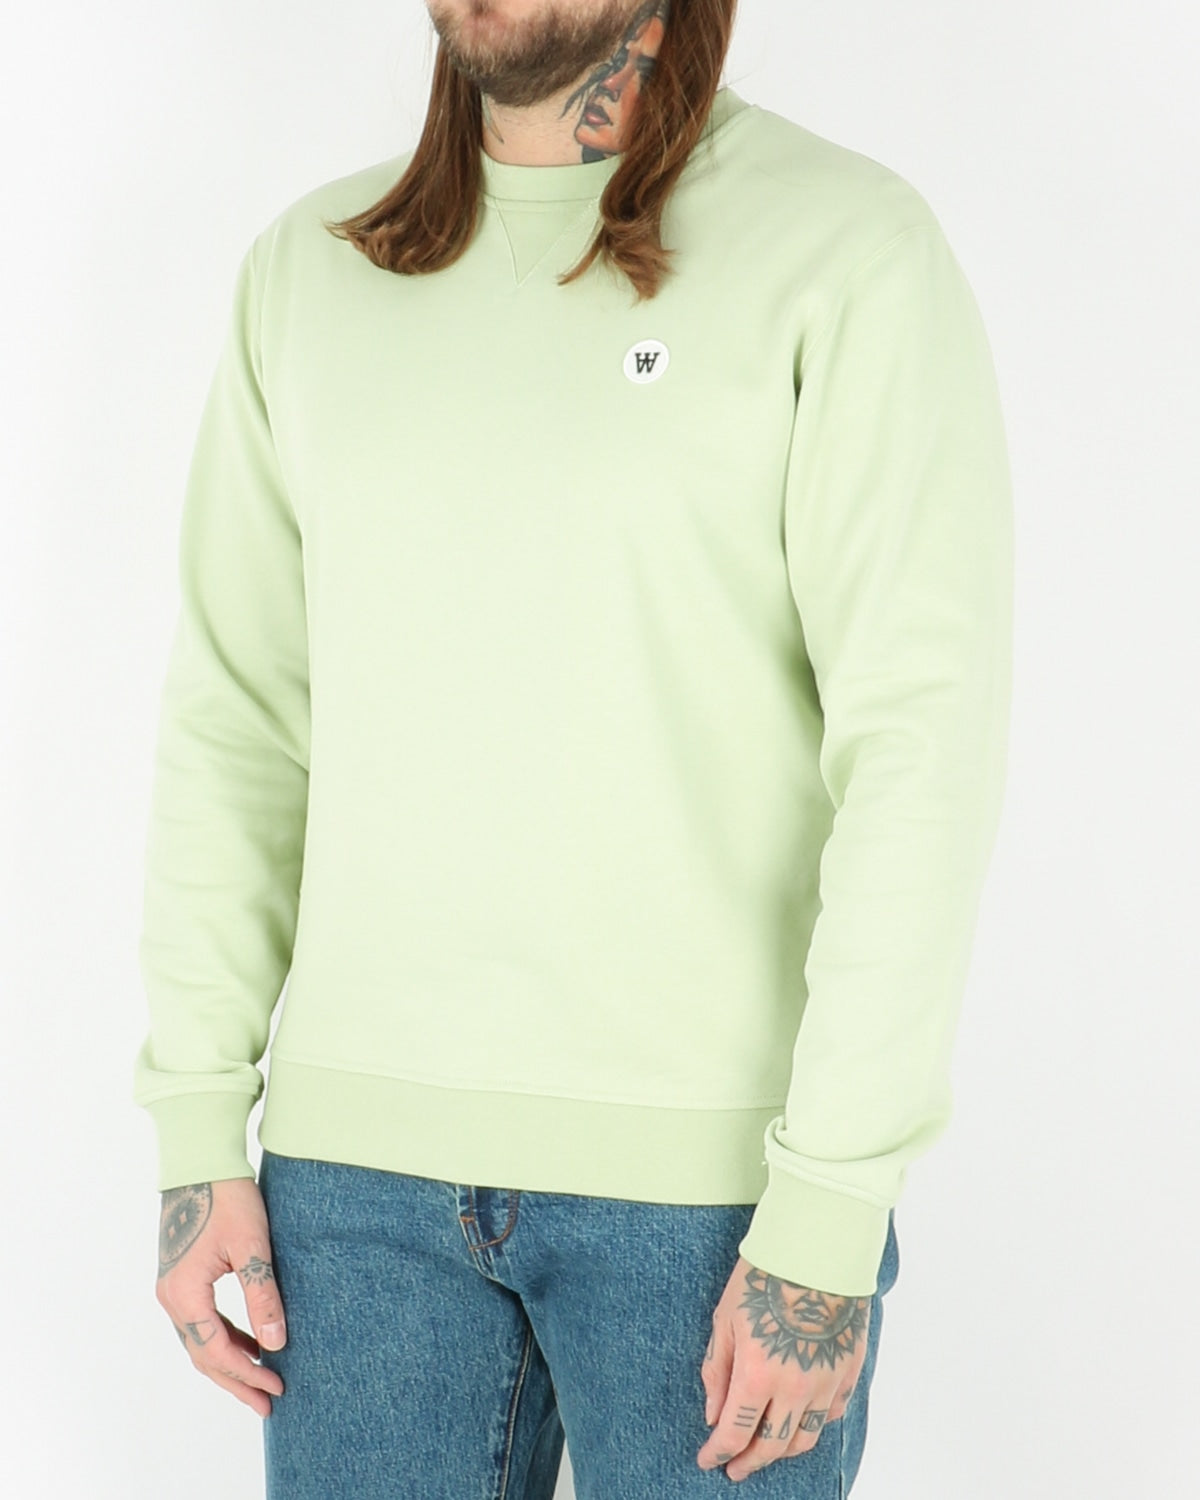 wood wood_tye sweatshirt_mint_2_3